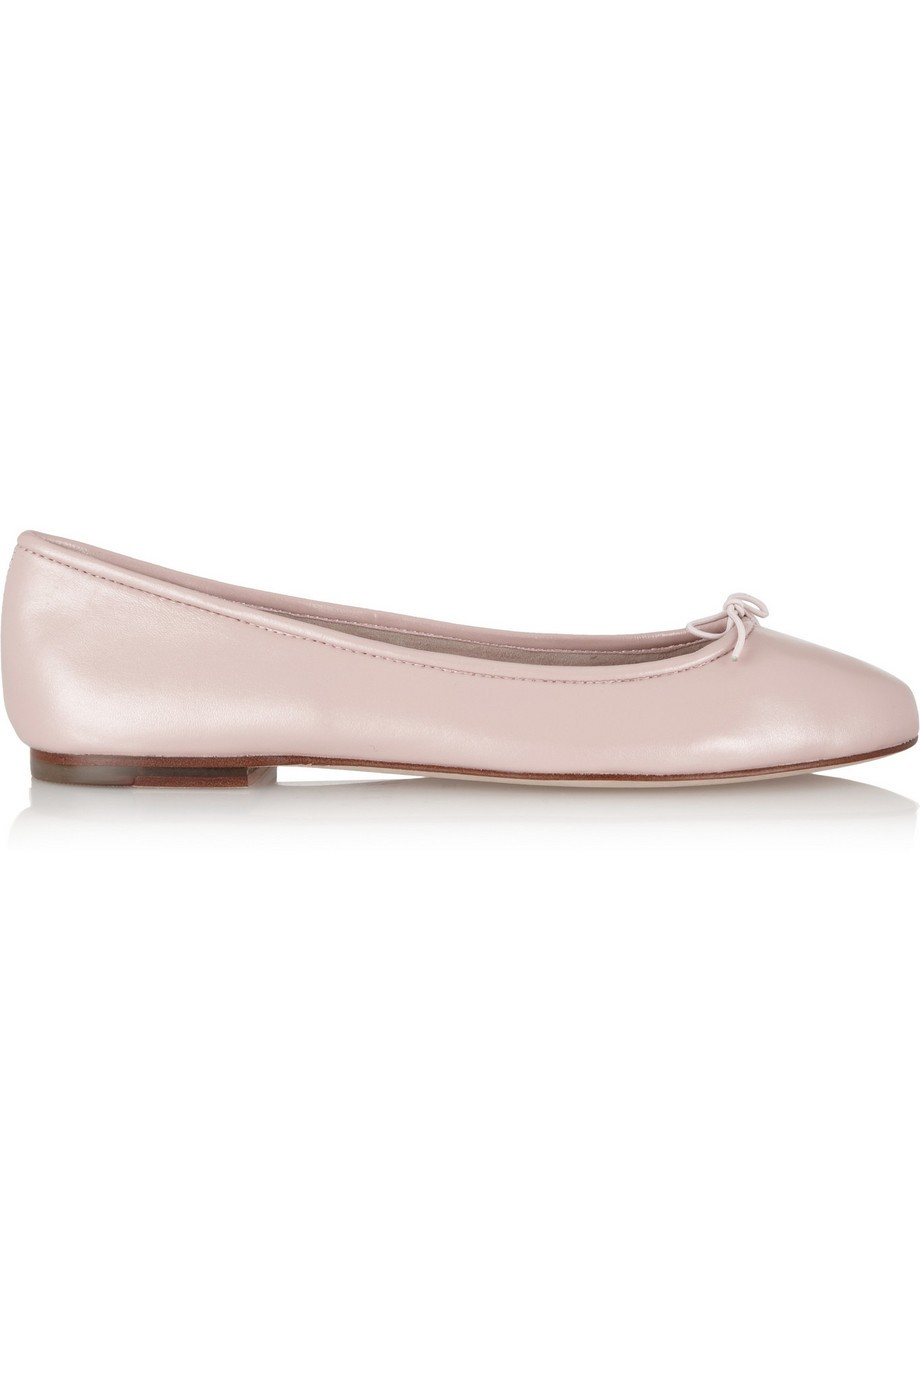 Fonteyn leather ballet flats